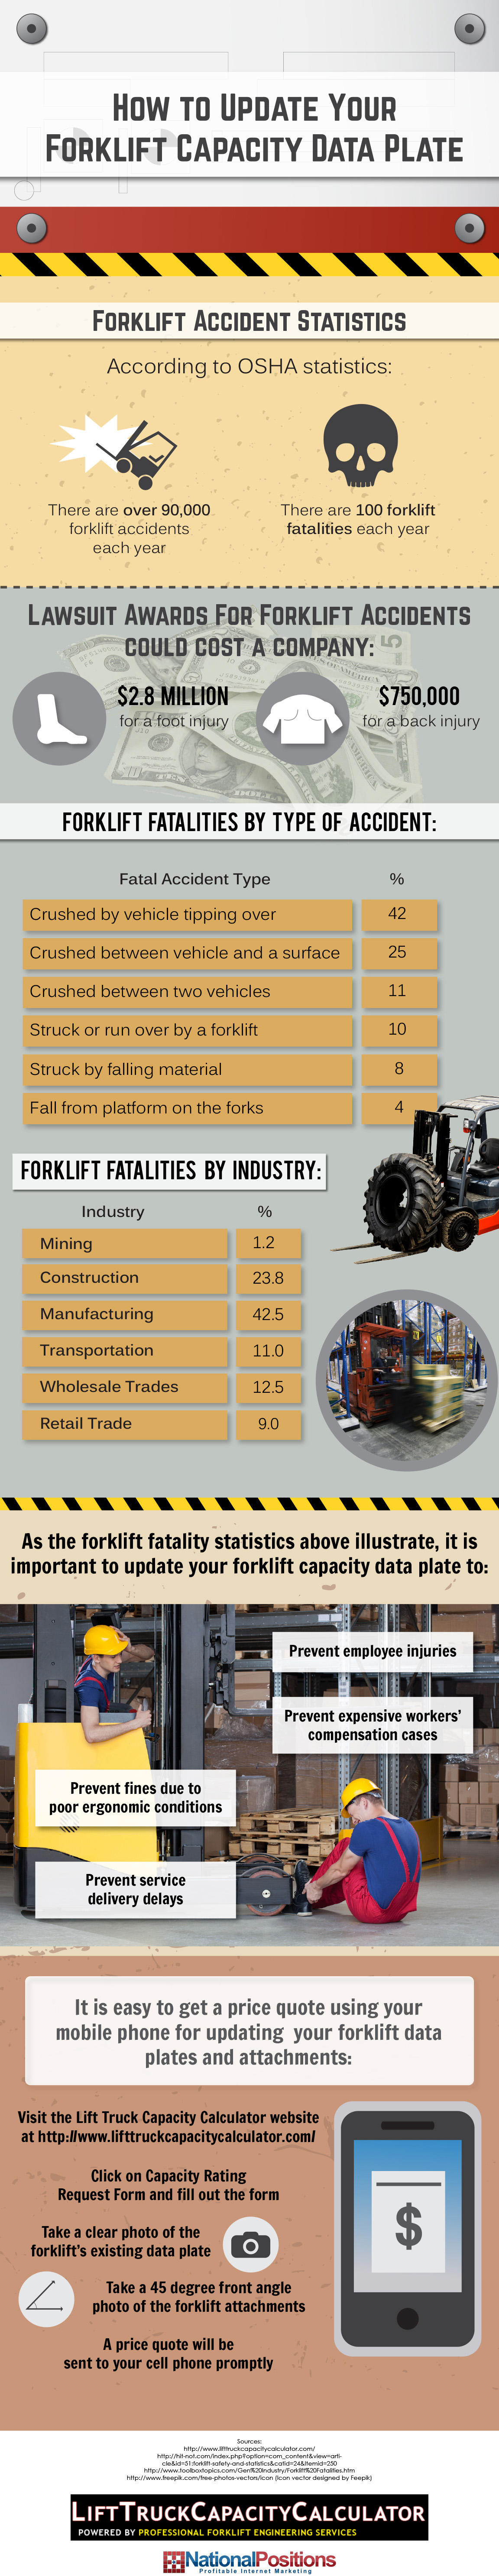 How to Update Your Forklift Capacity Data Plate